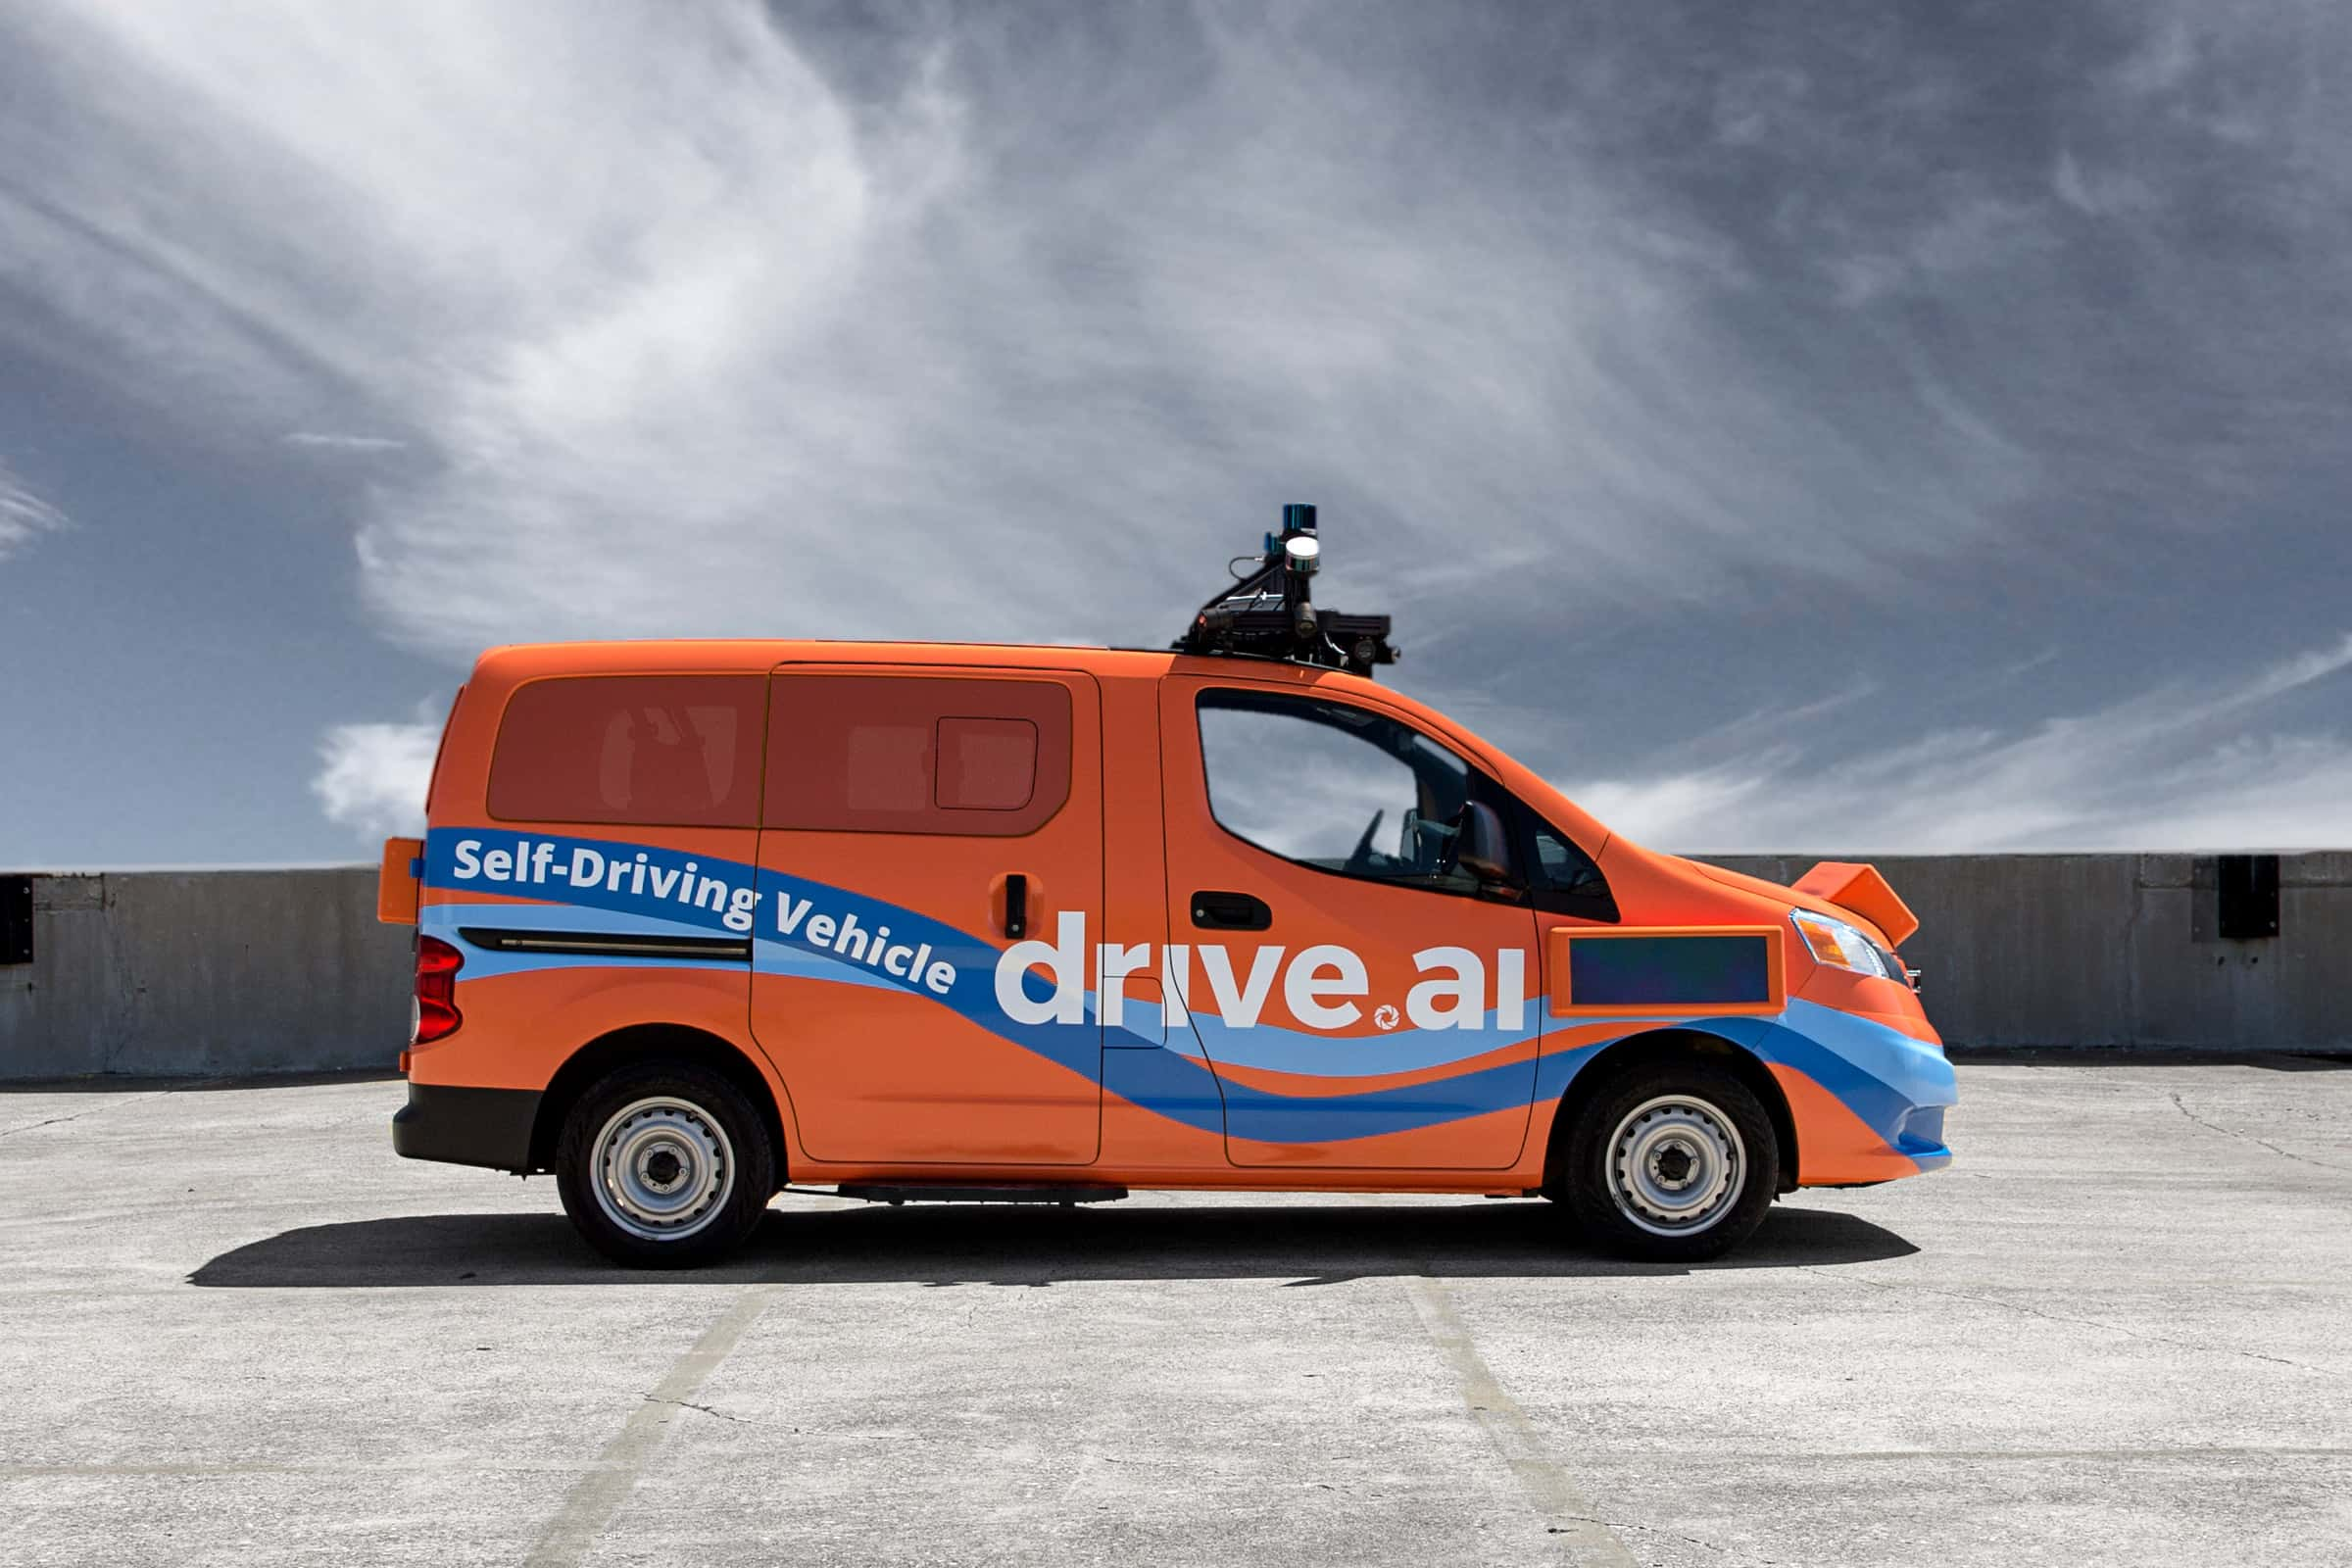 Drive.ai is a self-driving startup that Apple may have acquired